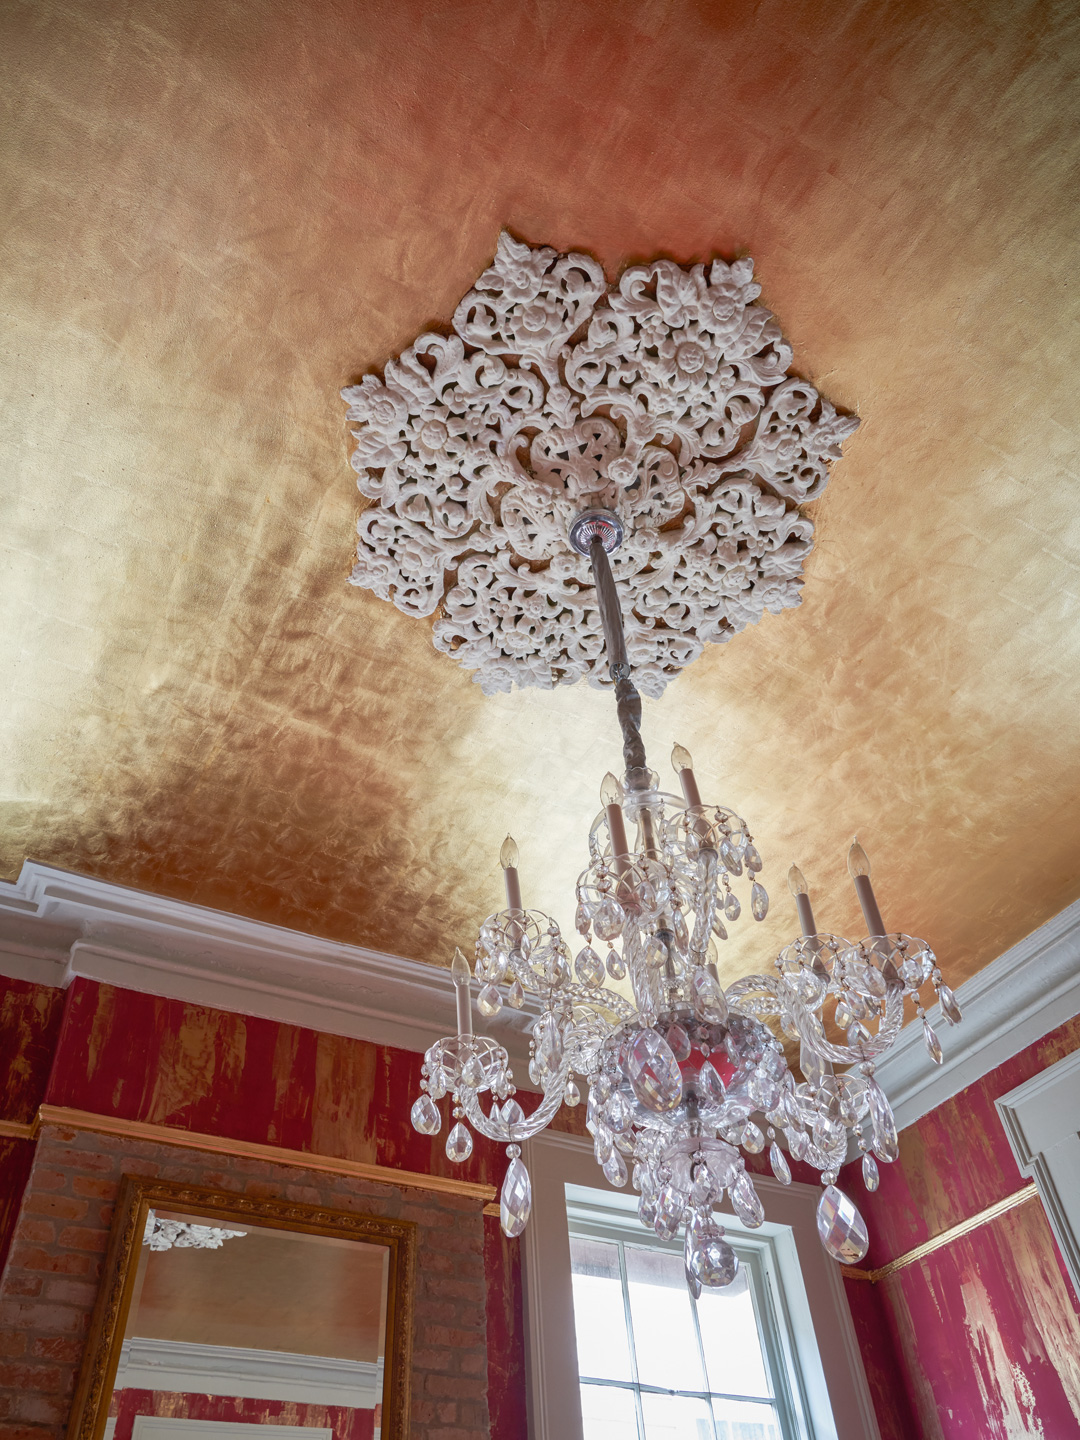 Sylvia T Designs – French Quarter Creole Cottage – Dramatic Plaster Finishes and Gold Leaf Ceilings – Shot from the billiard room highlighting the beautiful gold leaf ceiling that gorgeously reflects the plaster finished walls and ambient light.